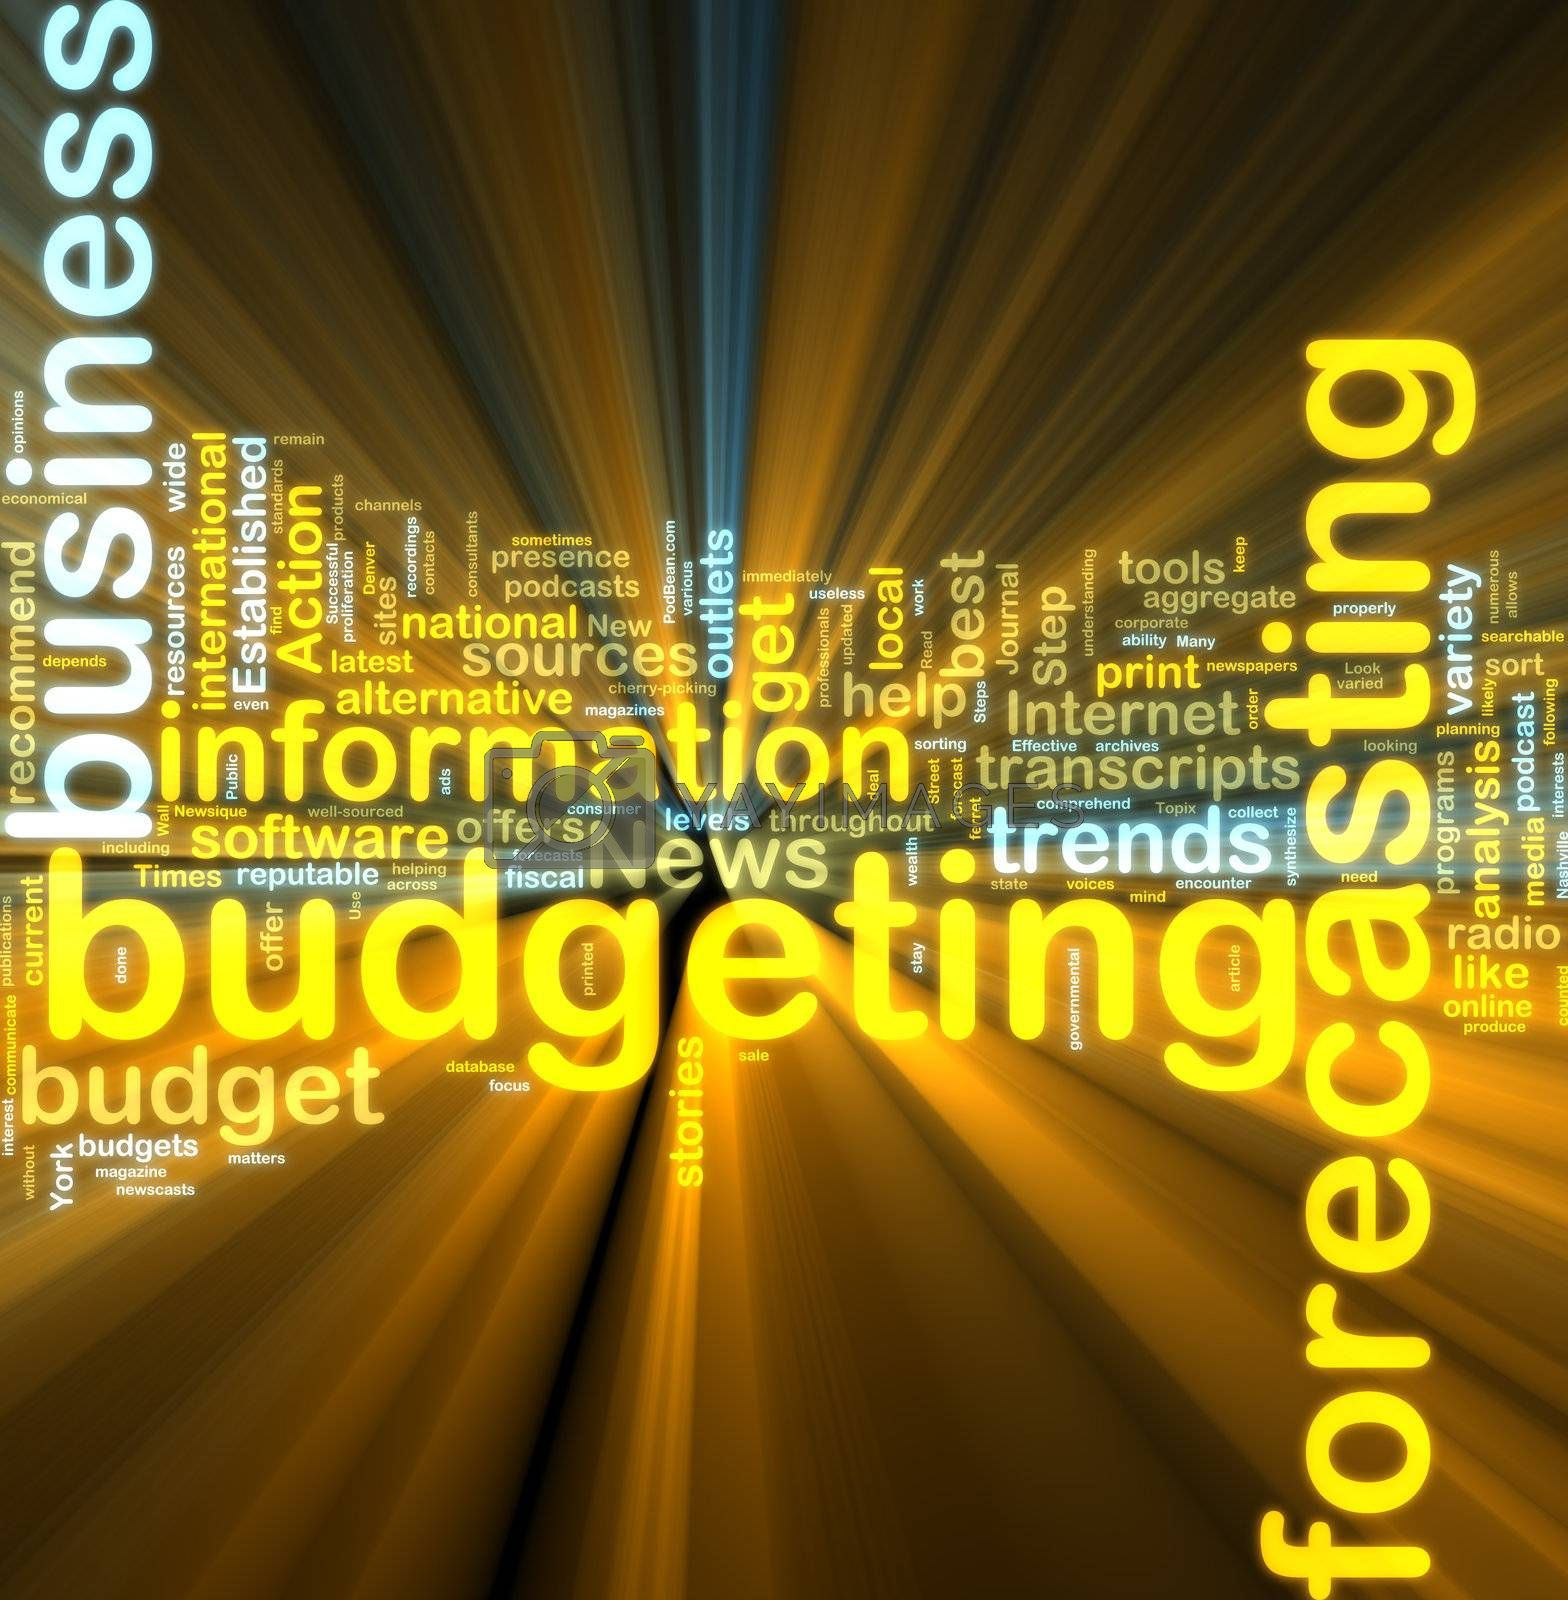 Royalty free image of Budgeting wordcloud glowing by kgtoh